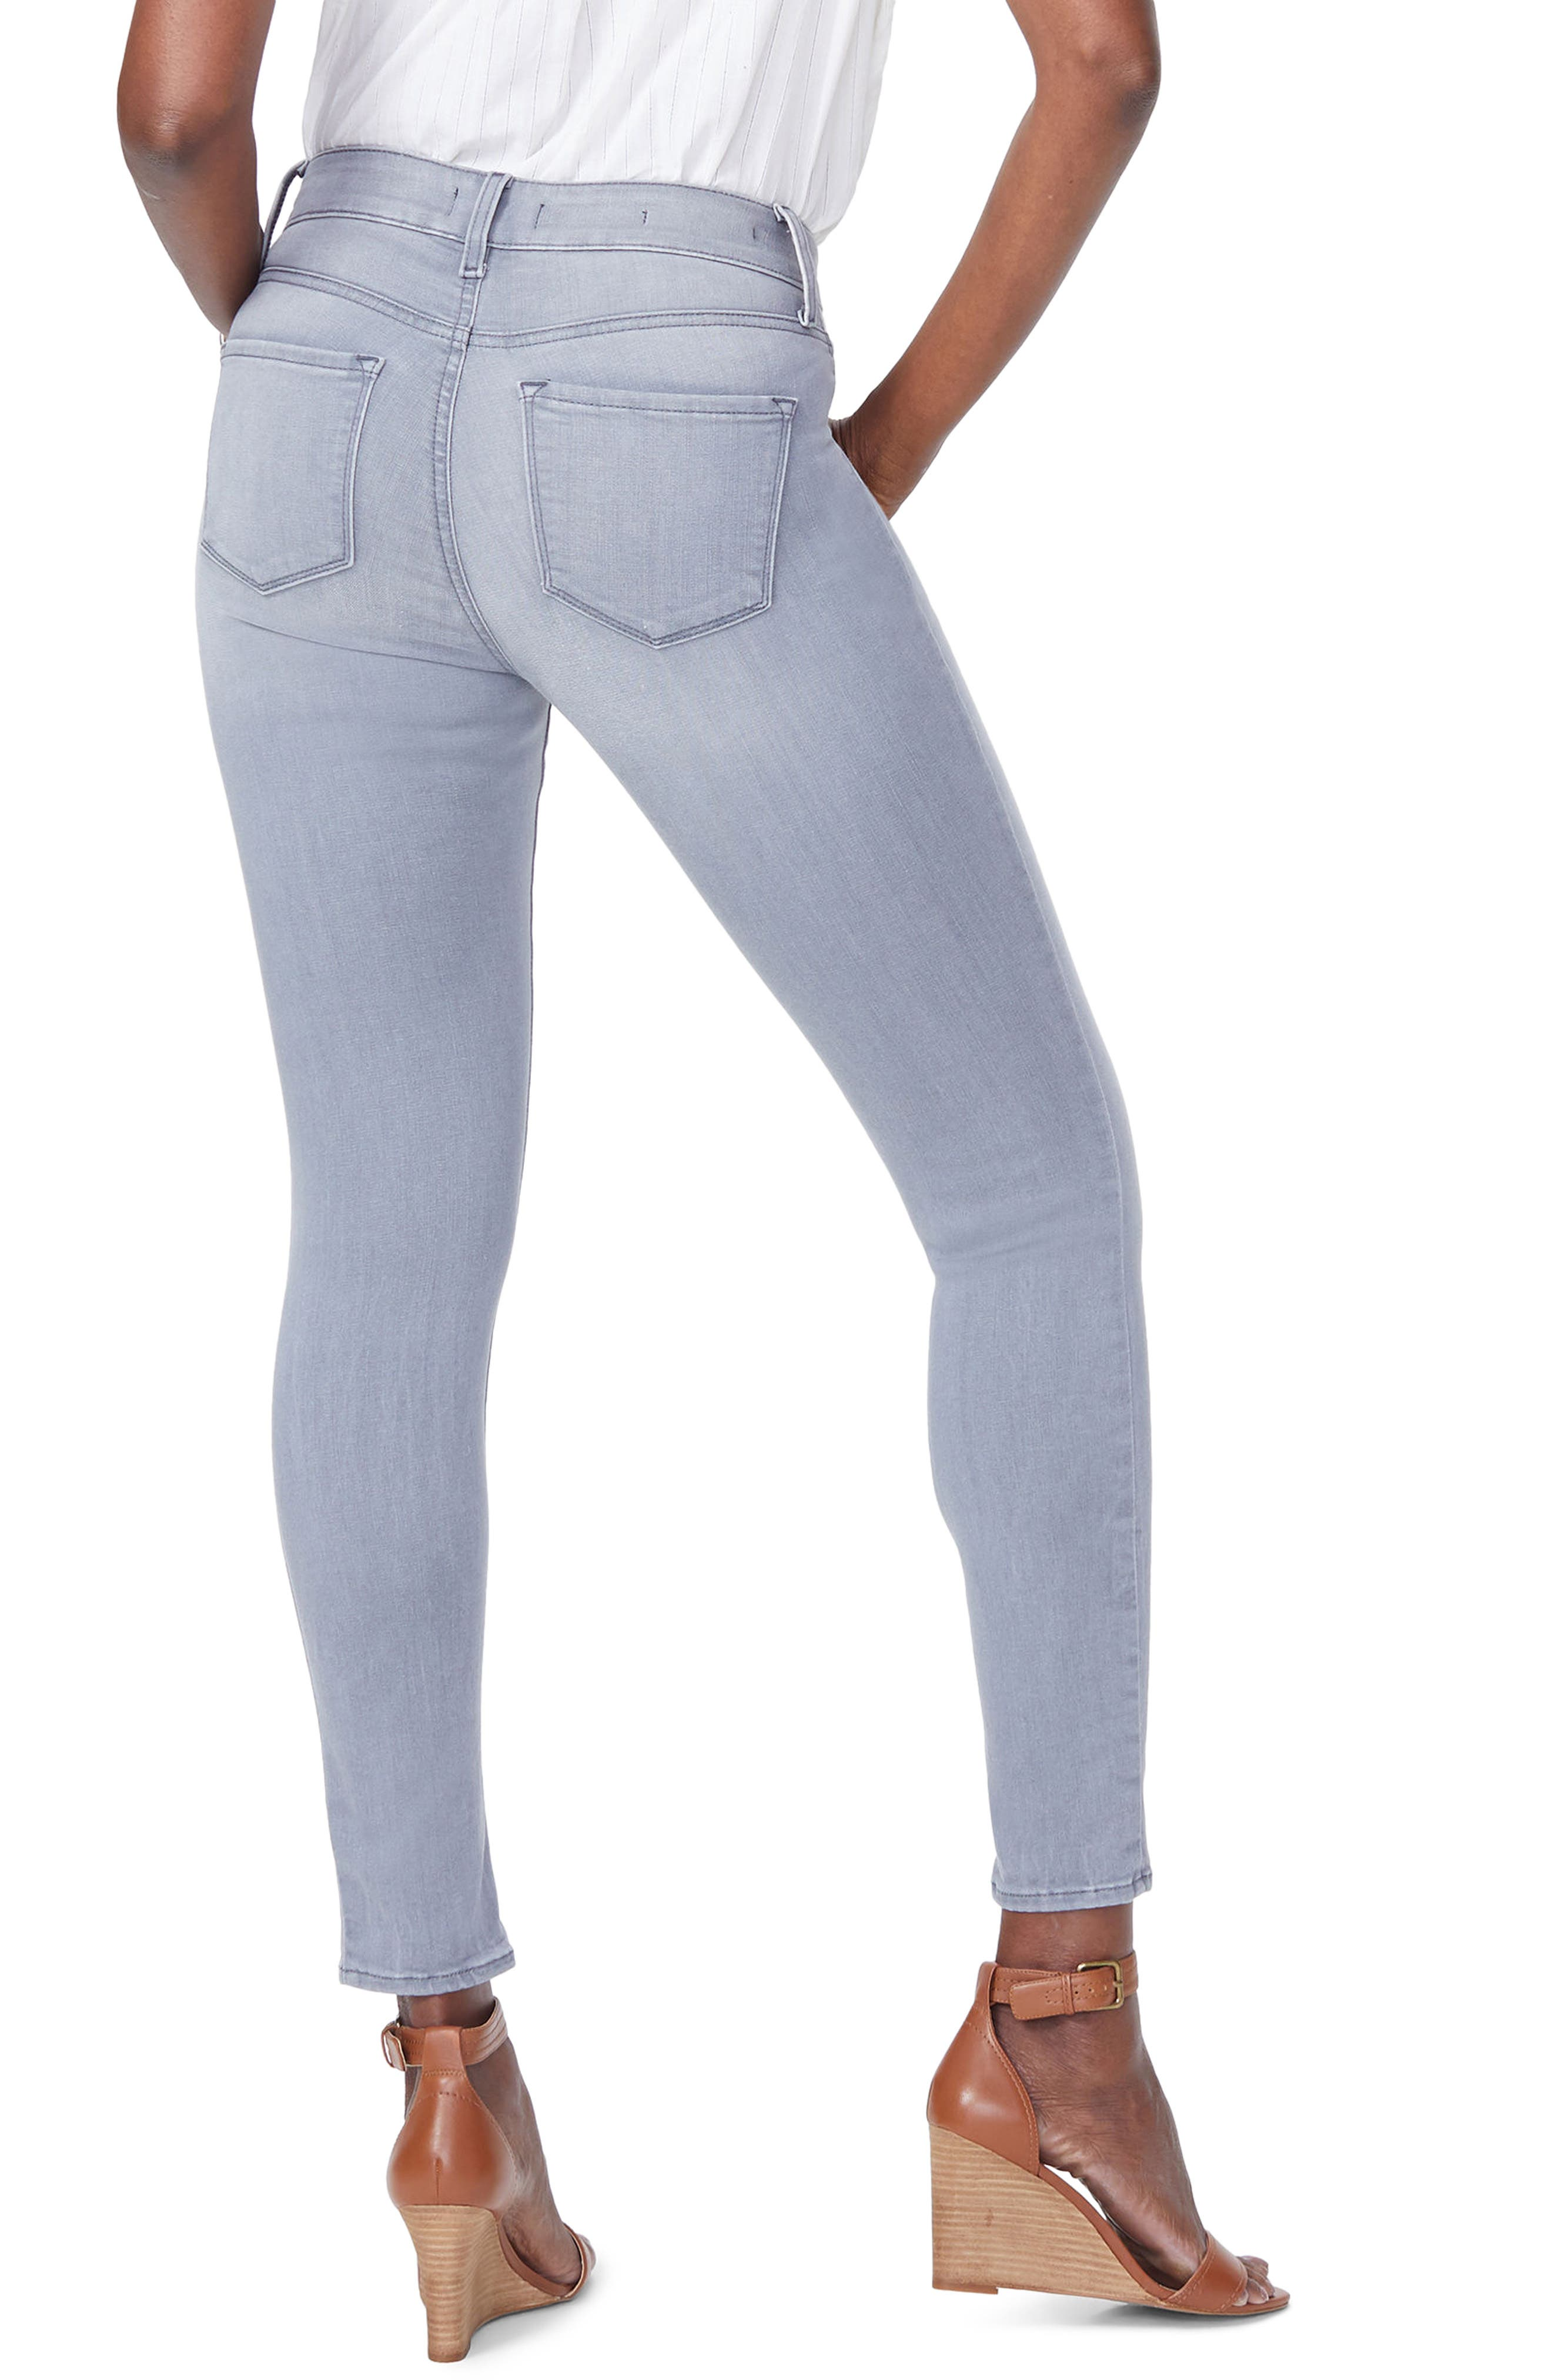 Ami Skinny Jeans,                             Alternate thumbnail 2, color,                             Carbon Beach